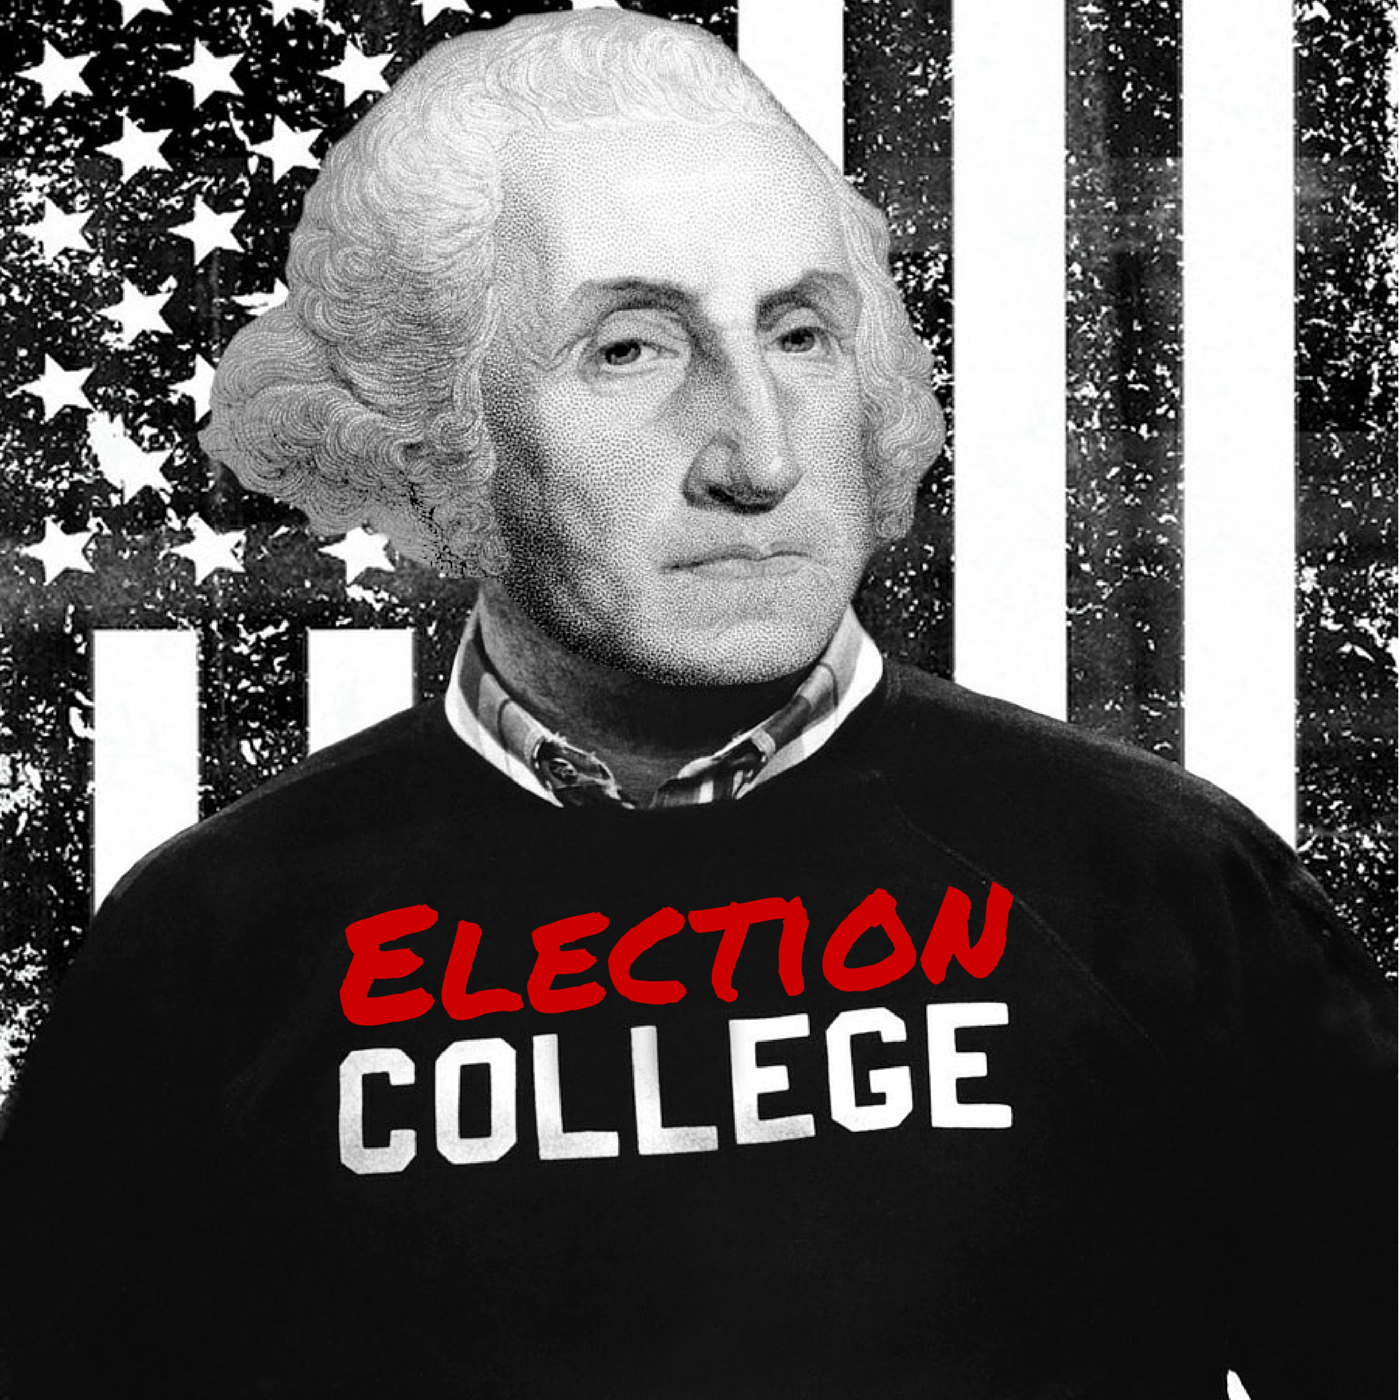 The Battle of the Bills - Election of 1908 | Episode #043 | Election College: United States Presidential Election History